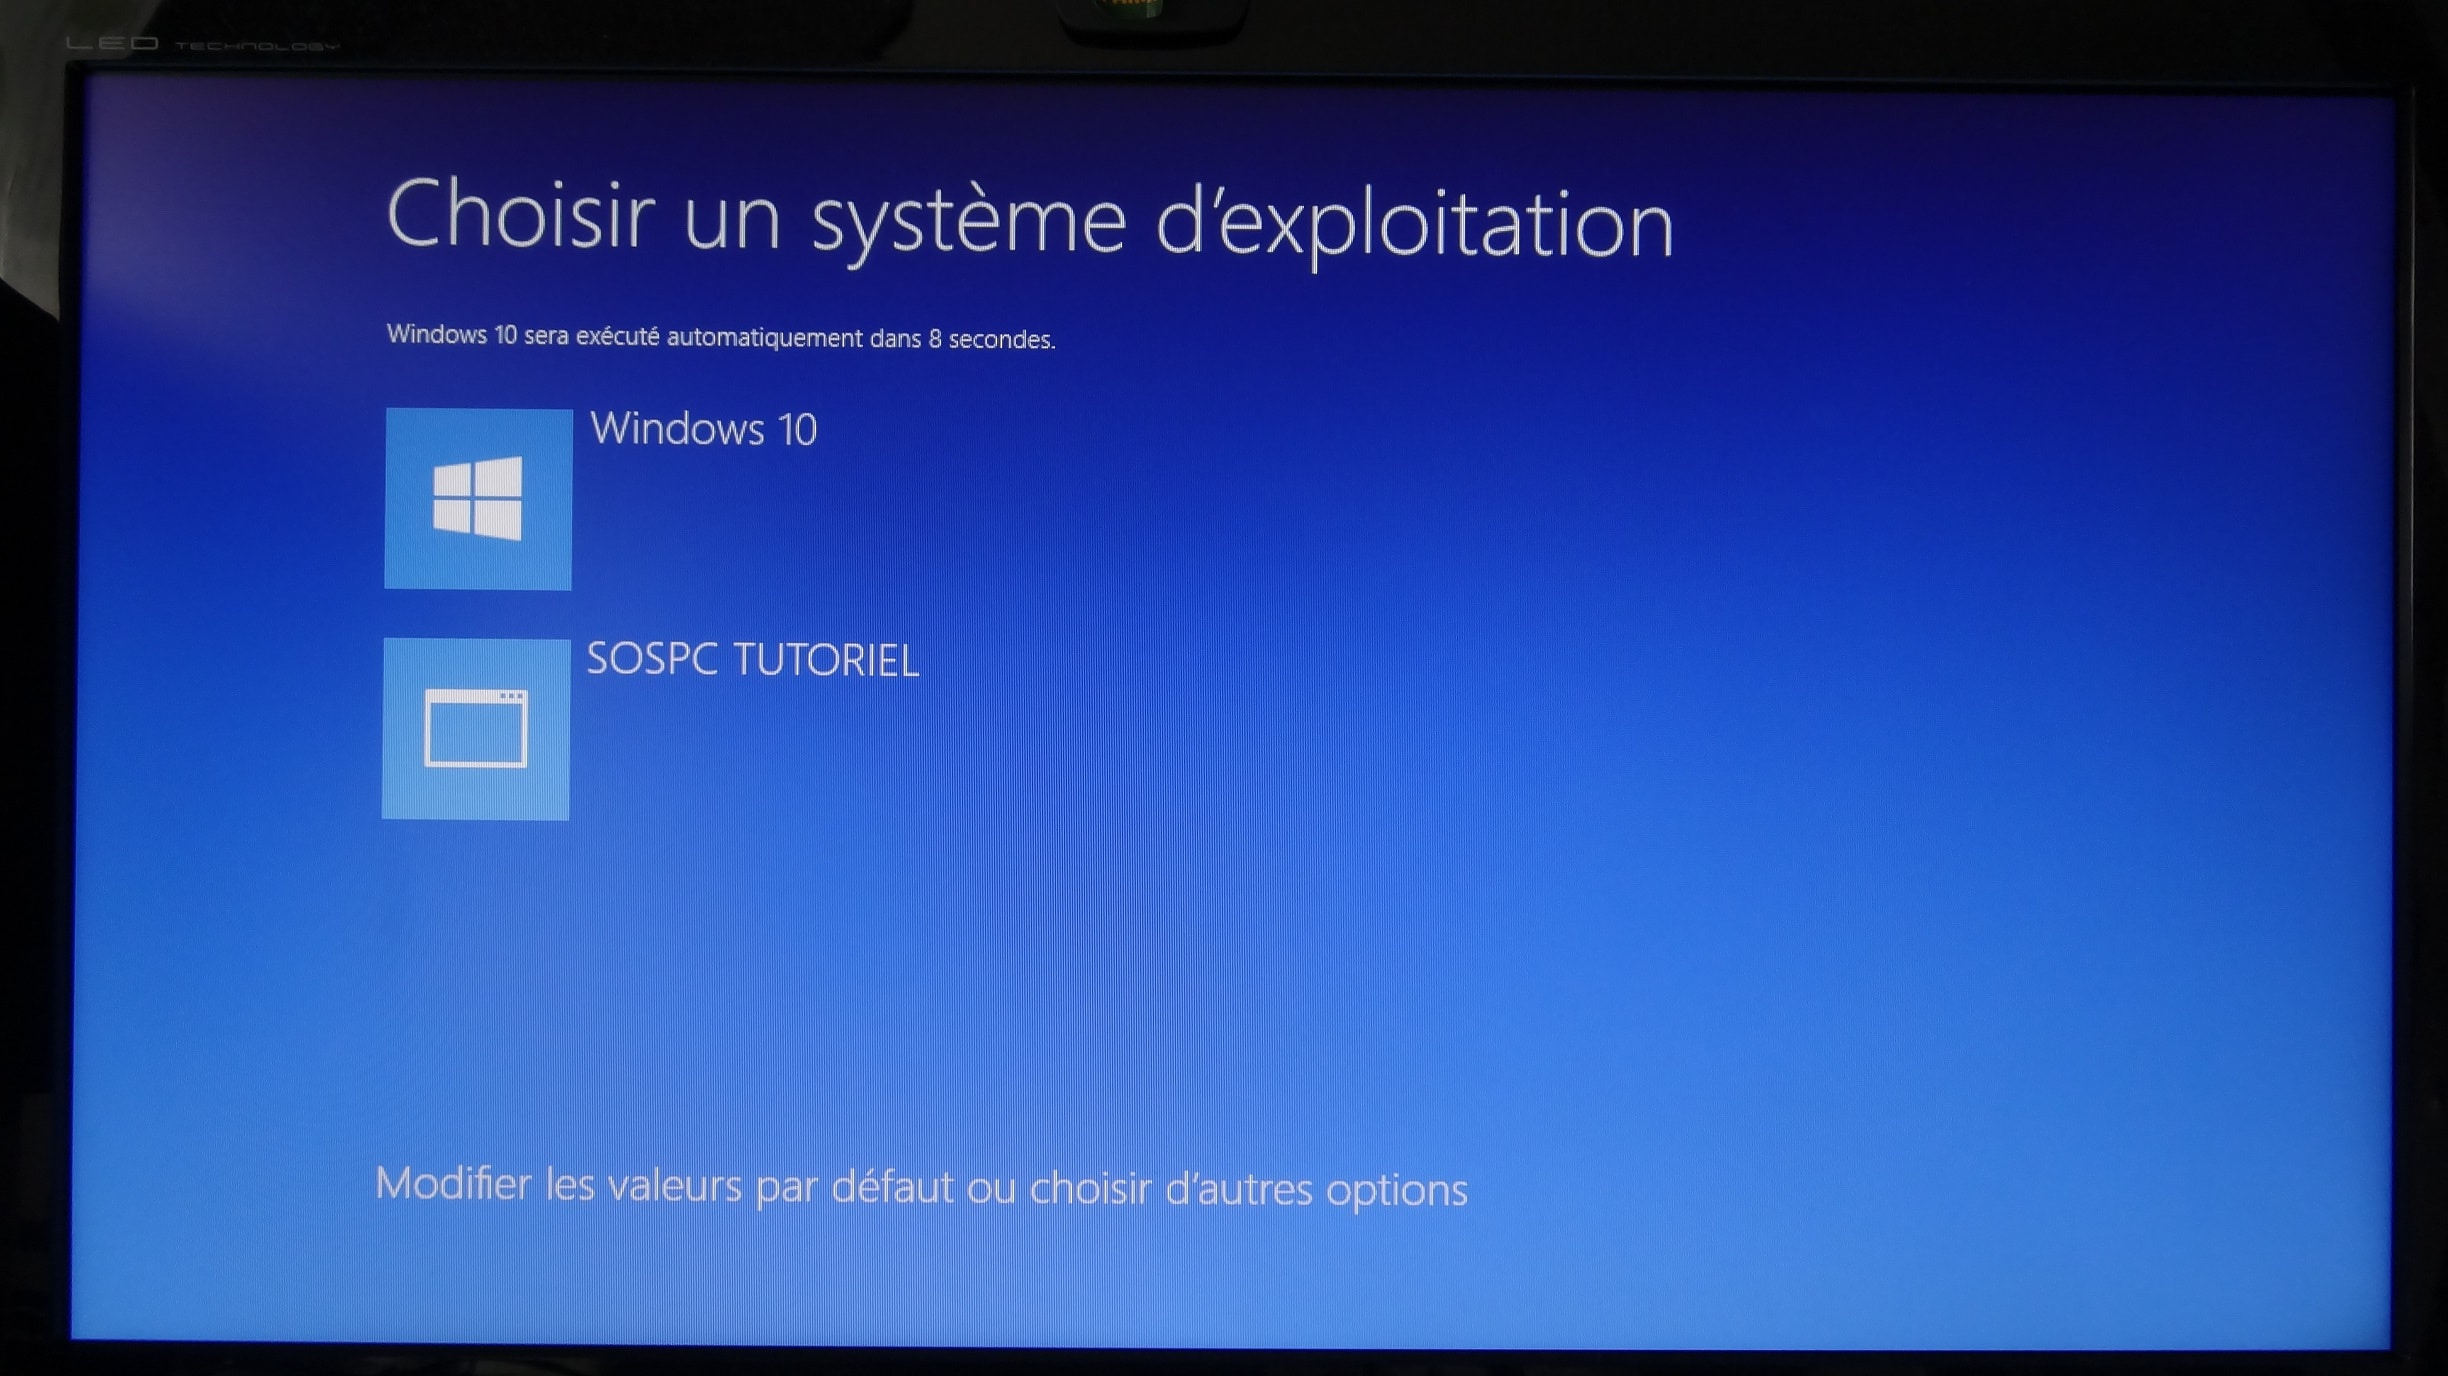 dual-boot-comment-le-creer-le-reparer-ou-le-supprimer-sospc-name-7